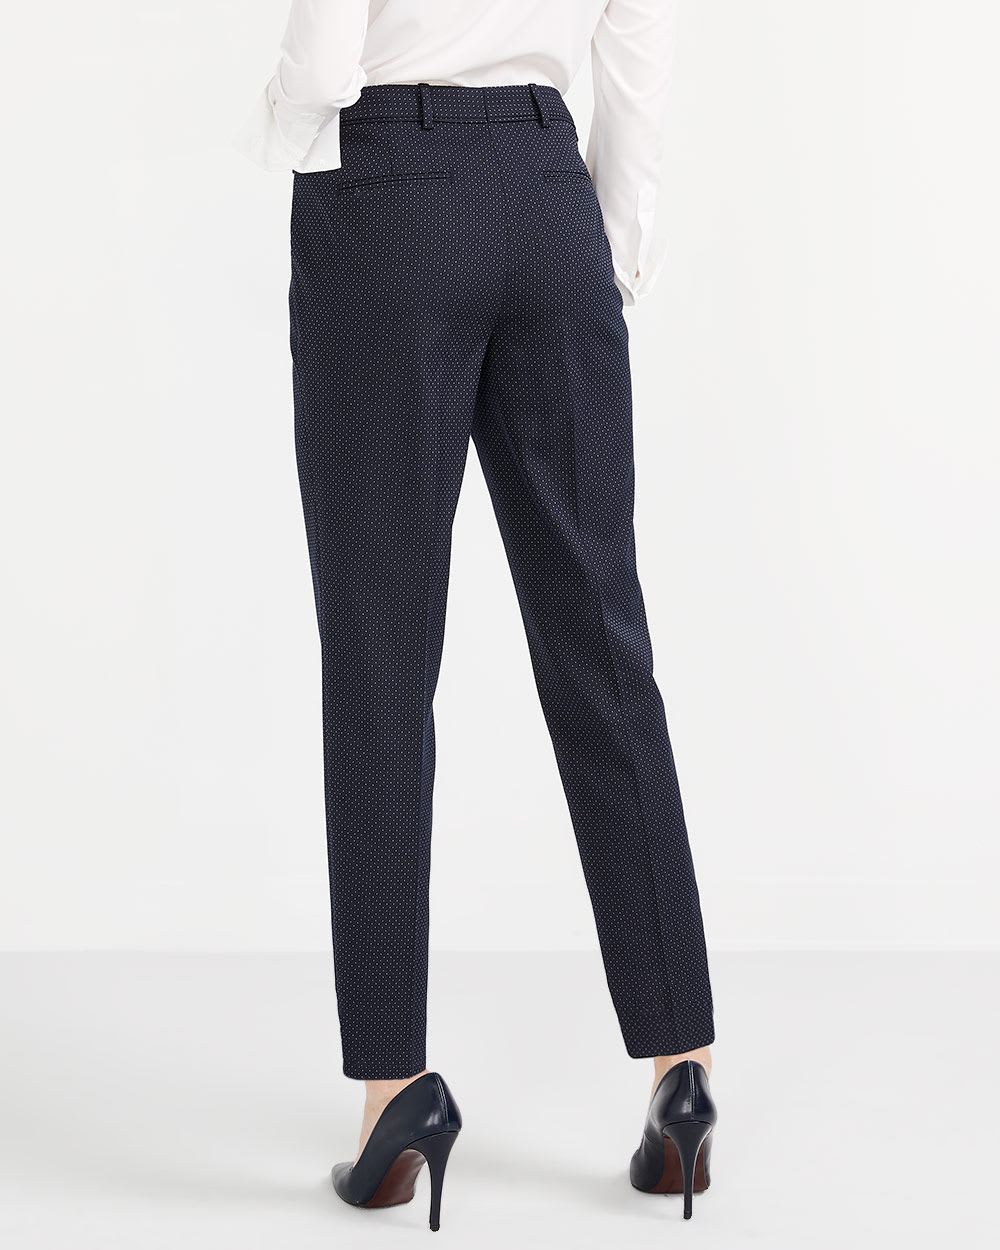 Willow & Thread Polka Dot Tailored Pants